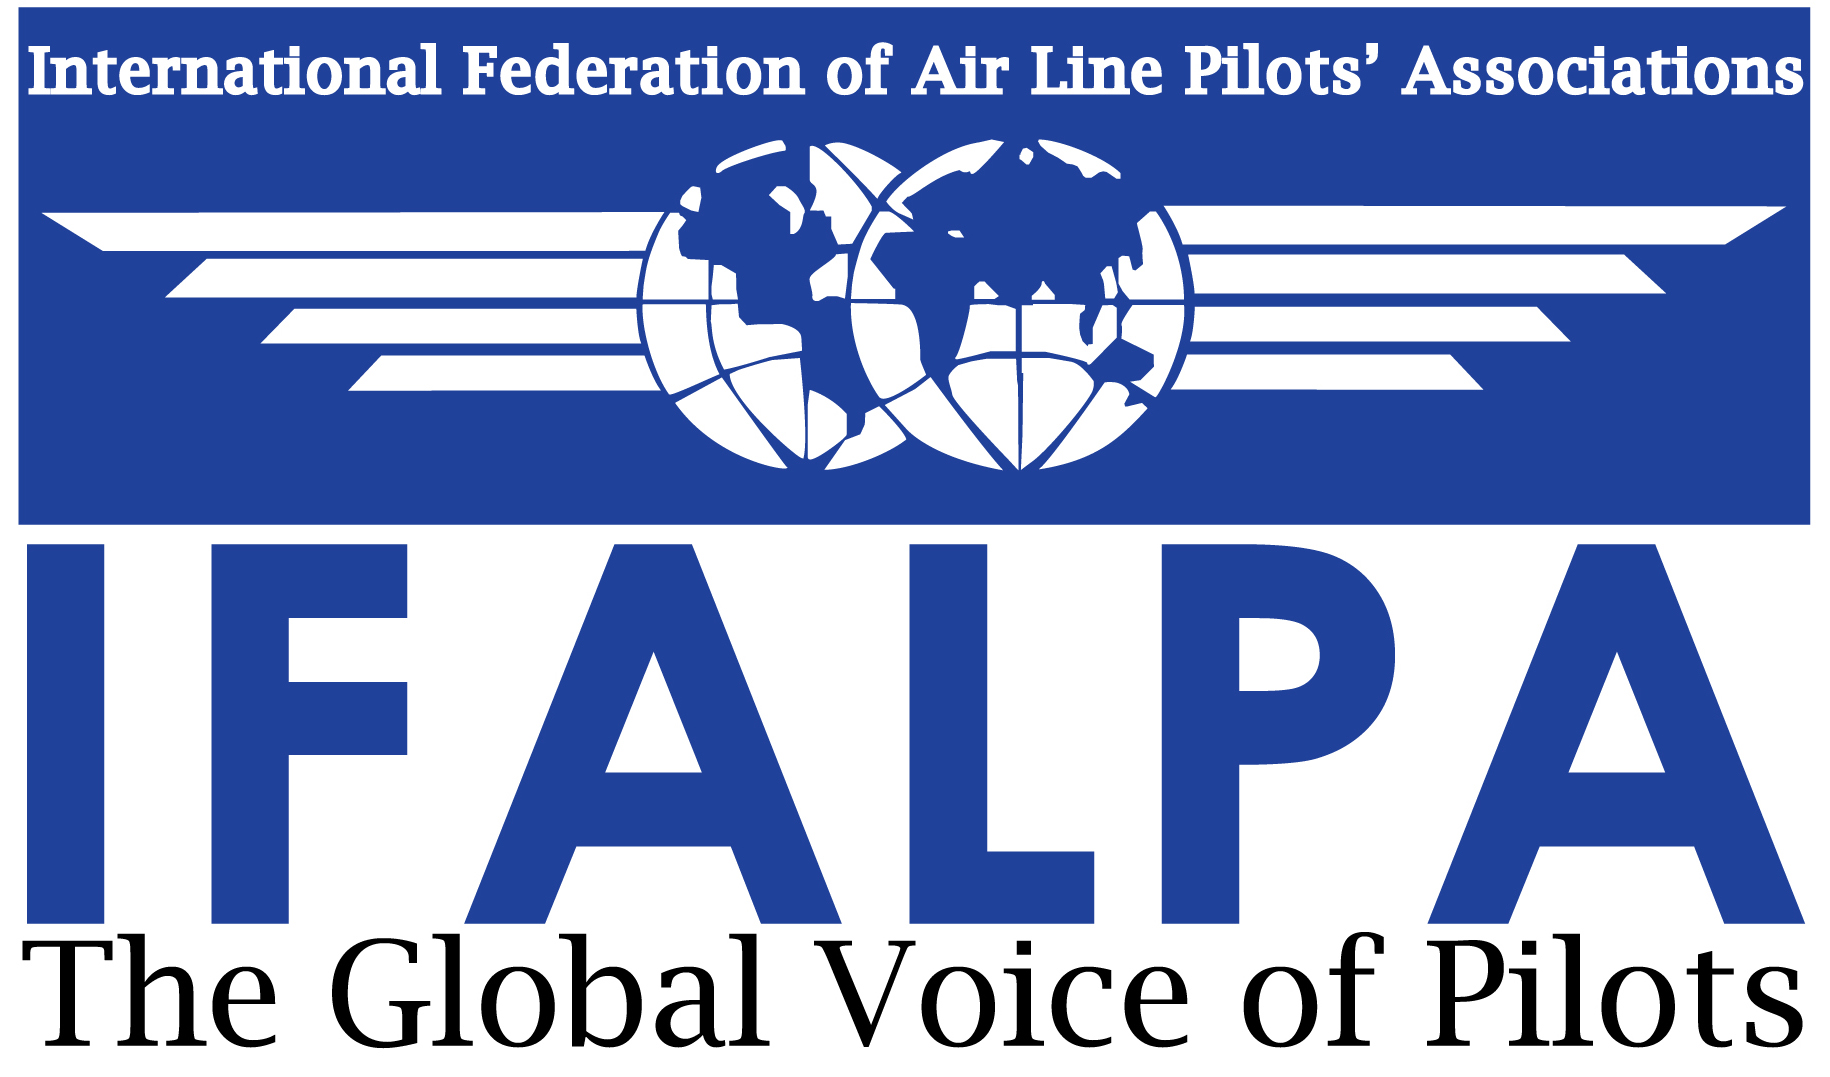 logo for International Federation of Air Line Pilots' Associations